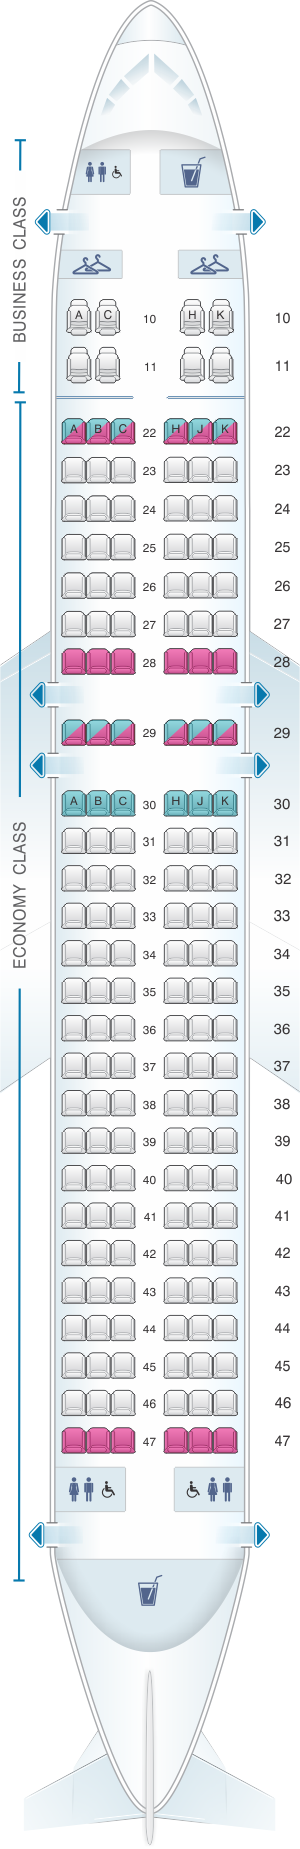 Seat Map Cathay Dragon Airbus A320 200 A32p Cathay Dragon Pinterest Airplane Seats